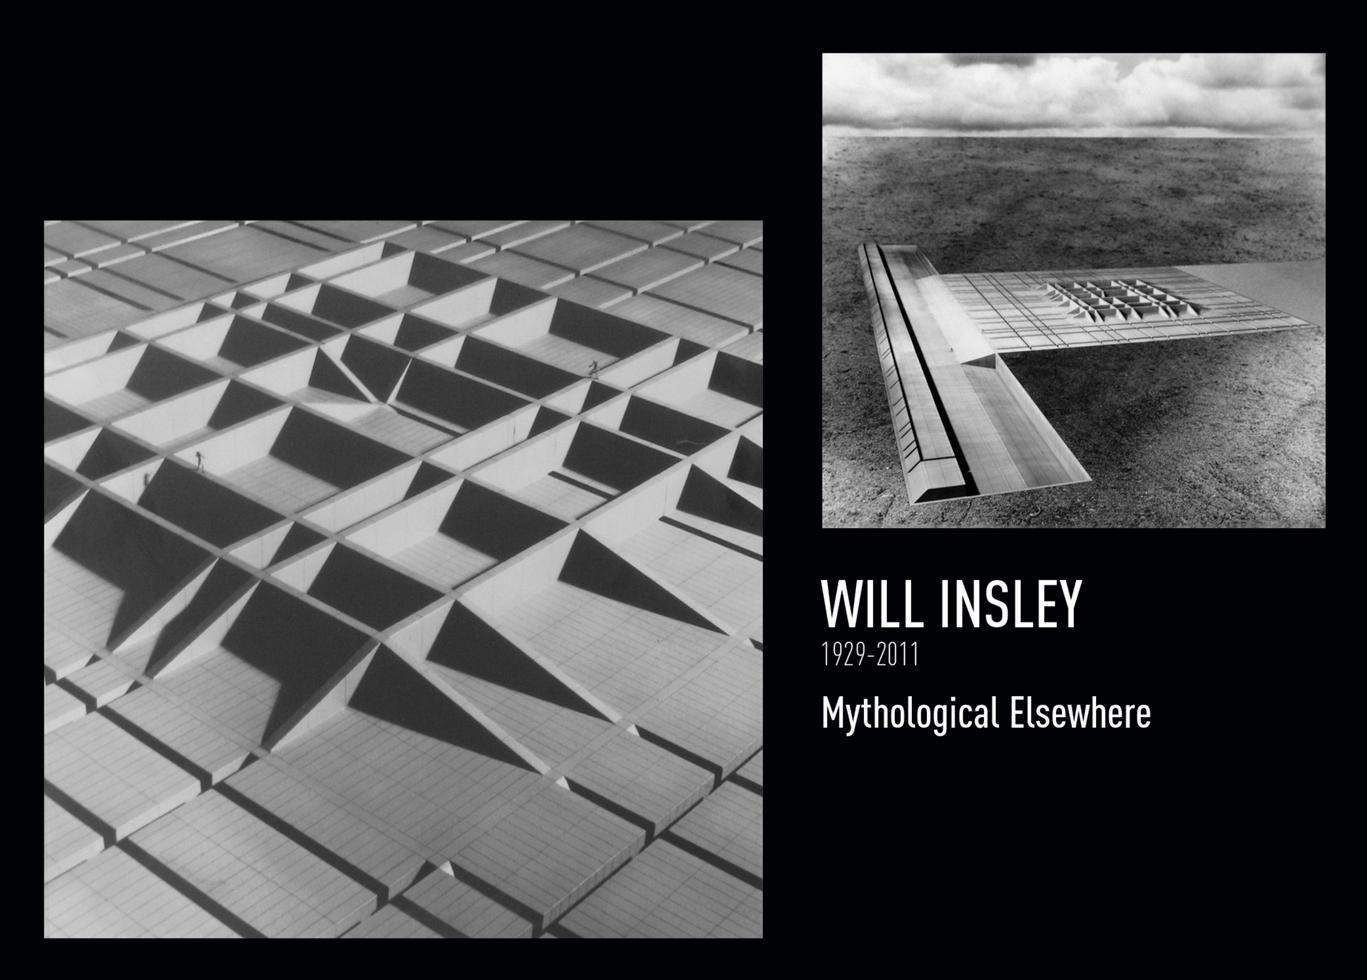 """Will Insley: """"Mythological Elsewhere"""" From ONECITY 1970s-90s   Events Calendar"""